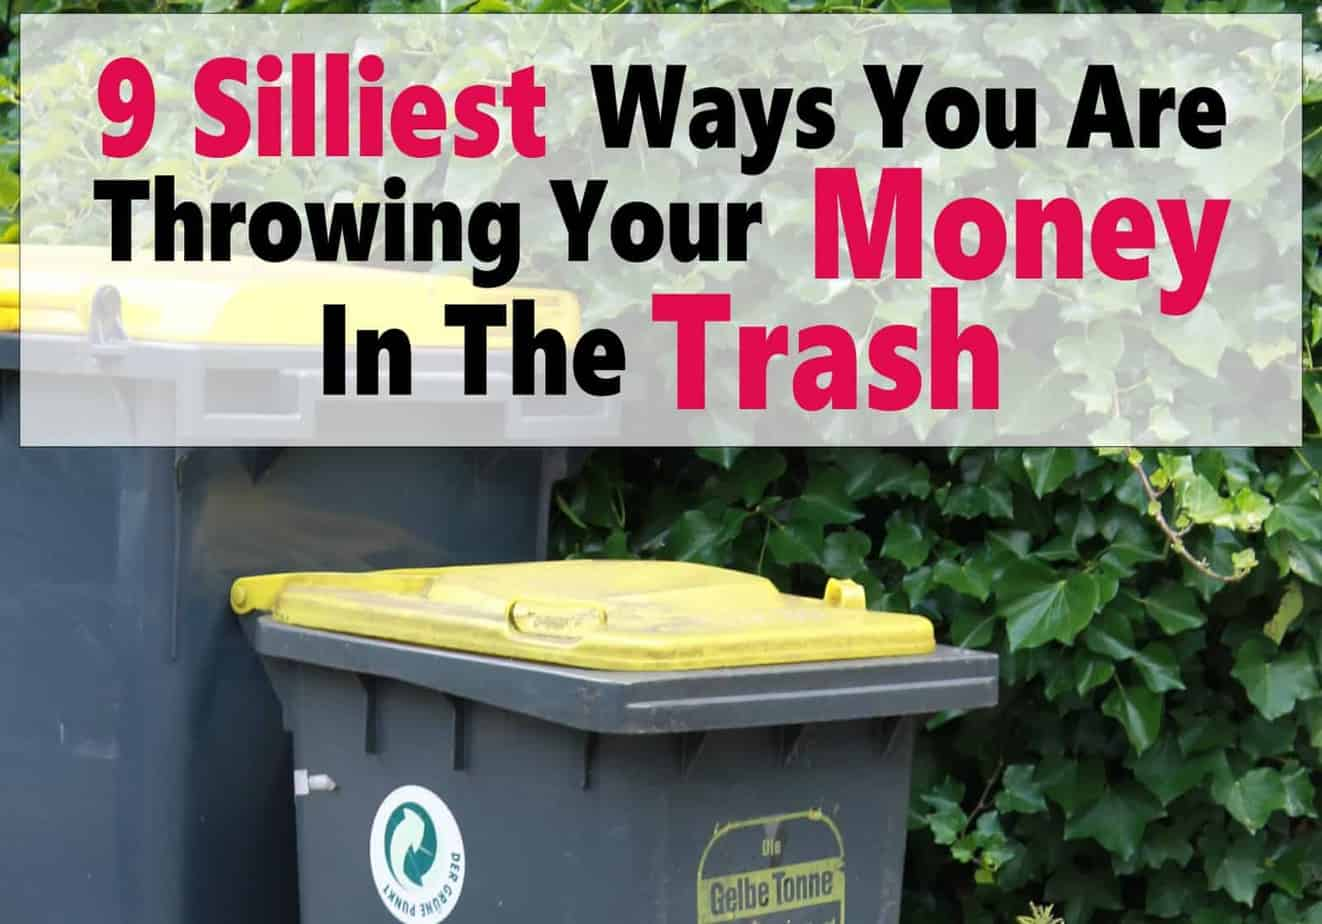 9 Silliest Ways You Are Throwing Your Money In The Trash ~ There are so many wasteful ways we lose money every single day. It doesn't need to be this way! Check out the 9 silliest ways you may be throwing your money in the trash and how to stop. money   finance   save money   personal finance   debt   debt free #money #finance #debt #savemoney